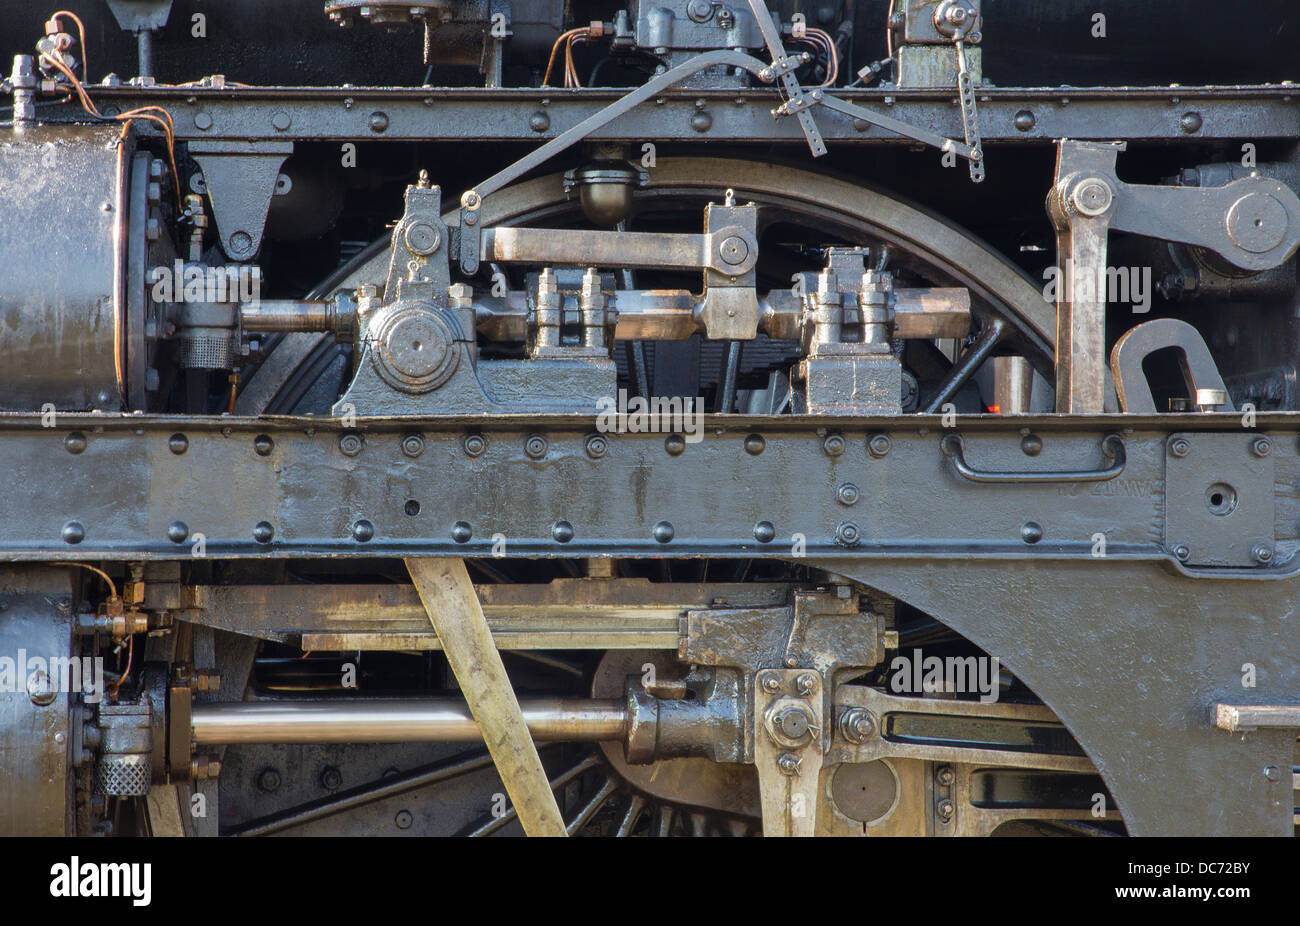 detail of old steam locomotive - Stock Image